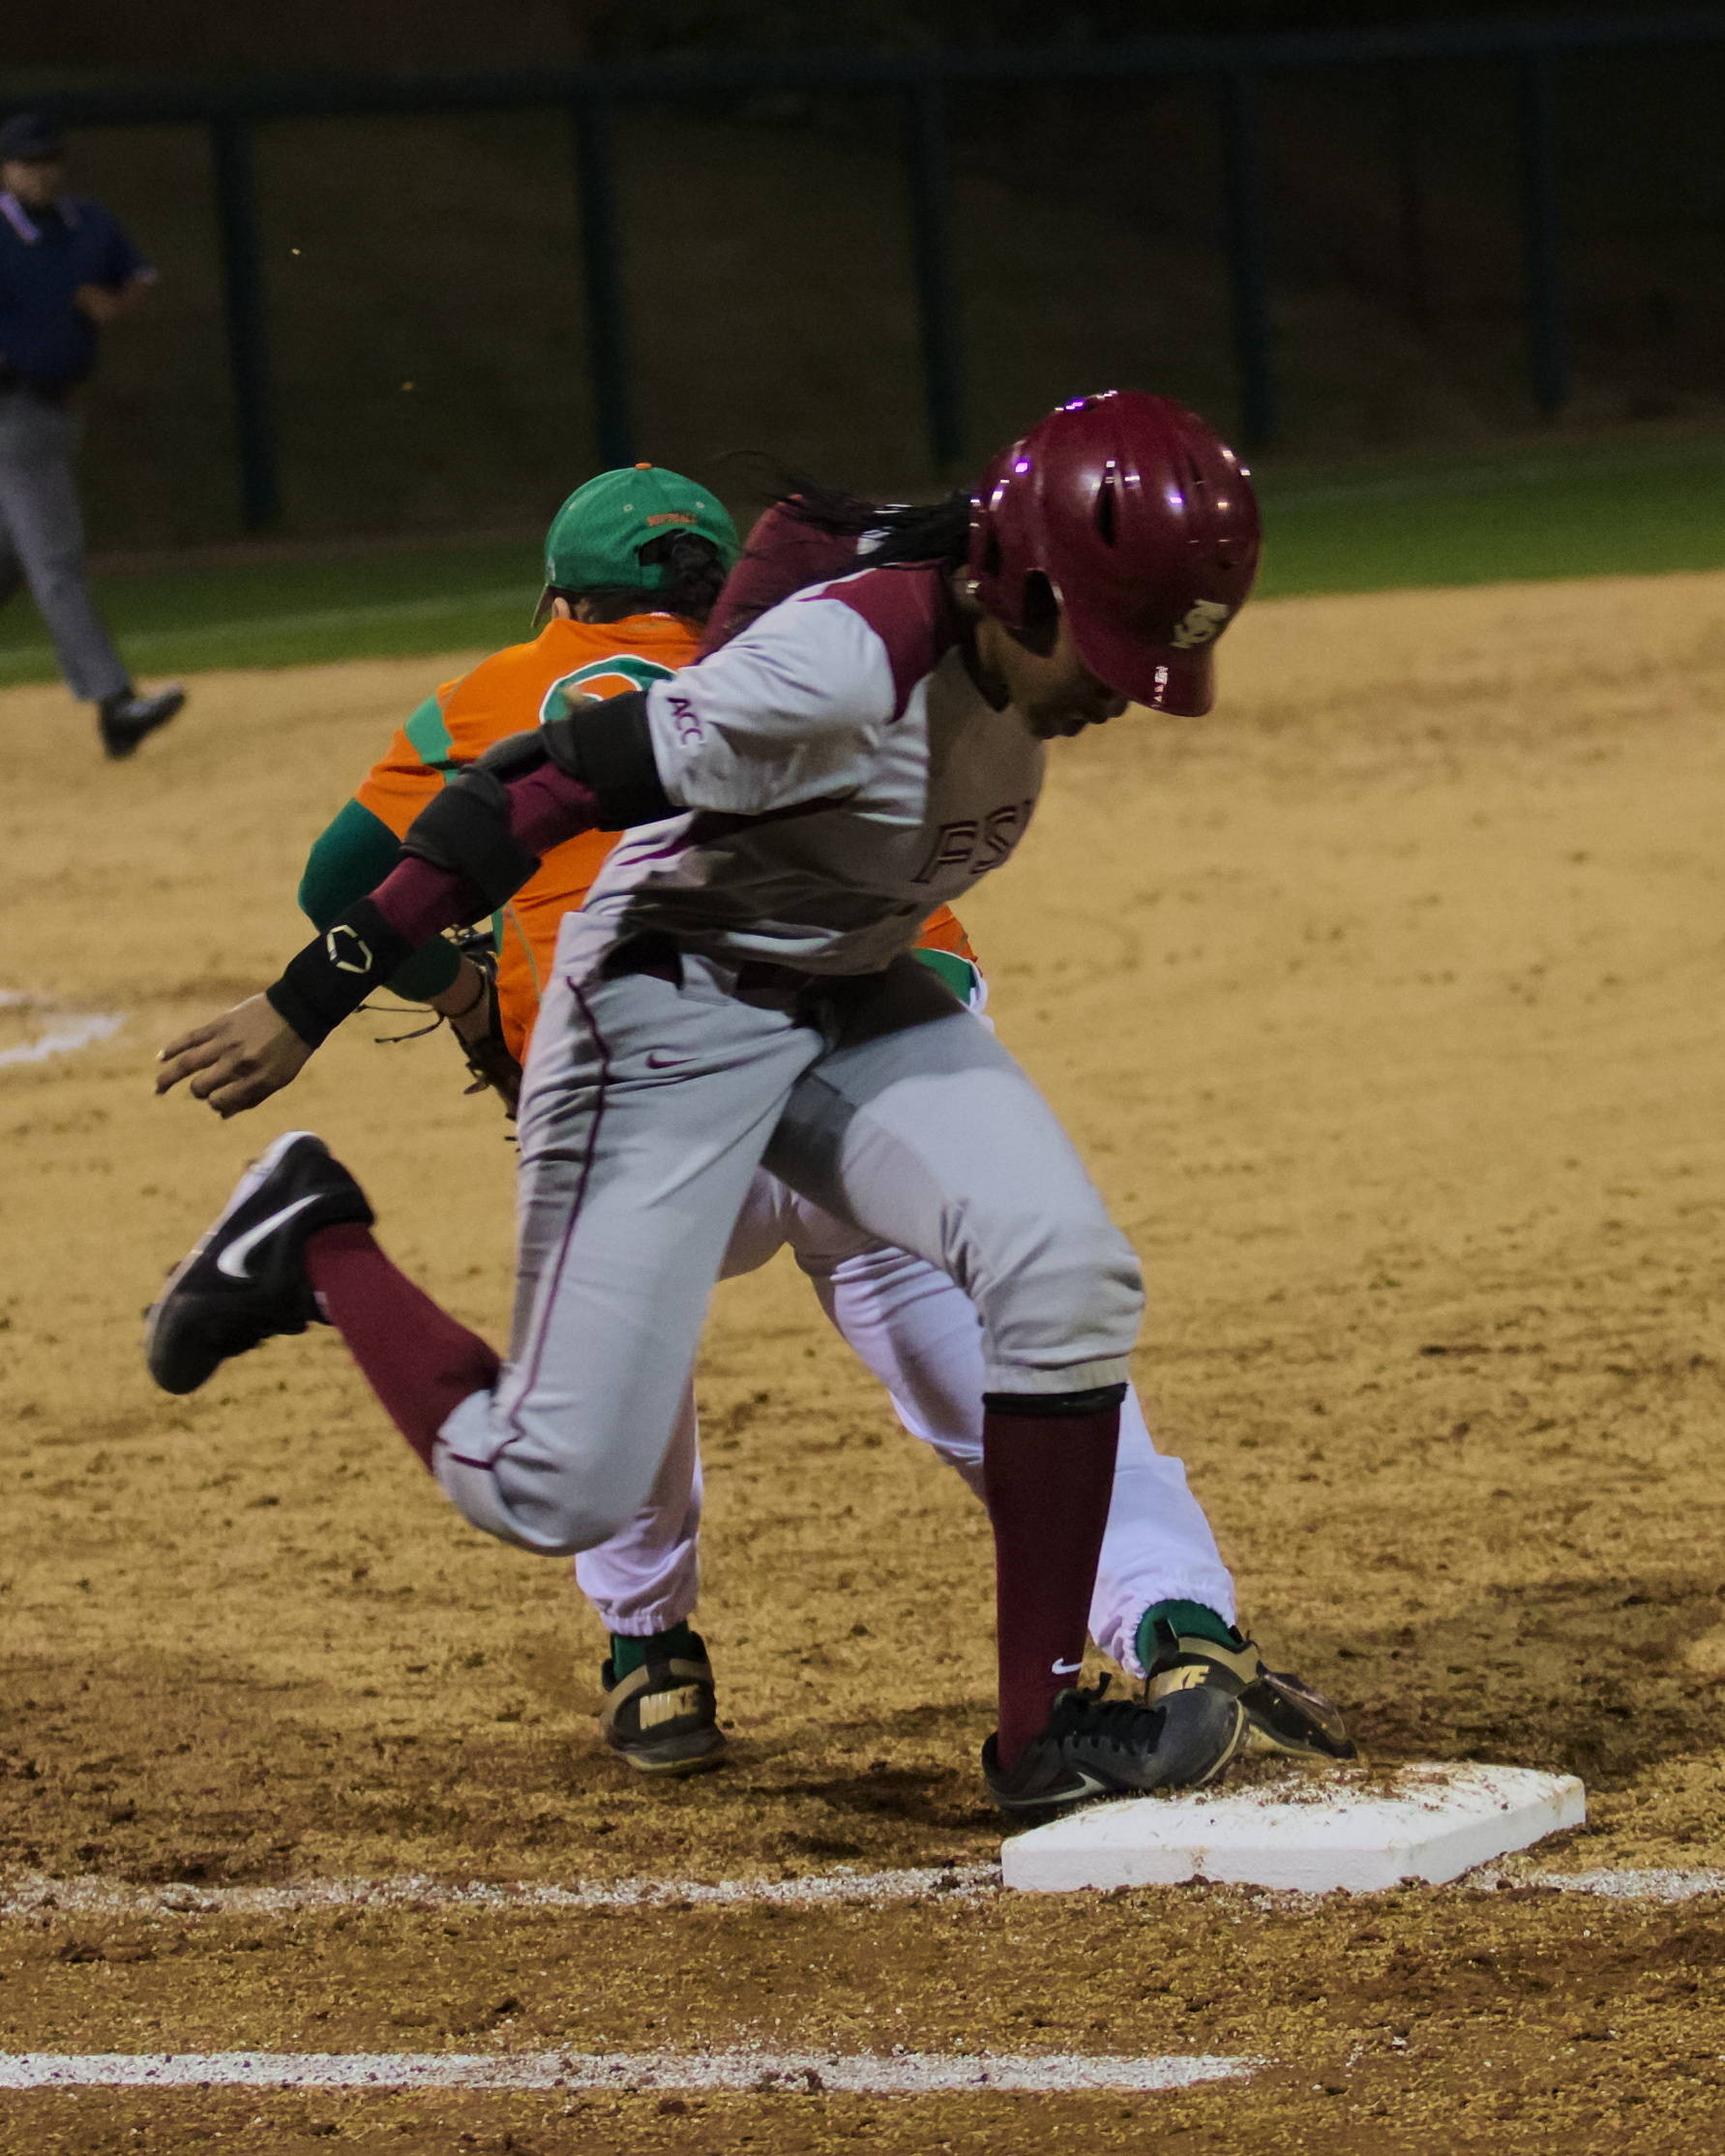 Tiffani Brown (6) beating out an infield hit, FSU vs FAMU, 02/08/13. (Photo by Steve Musco)